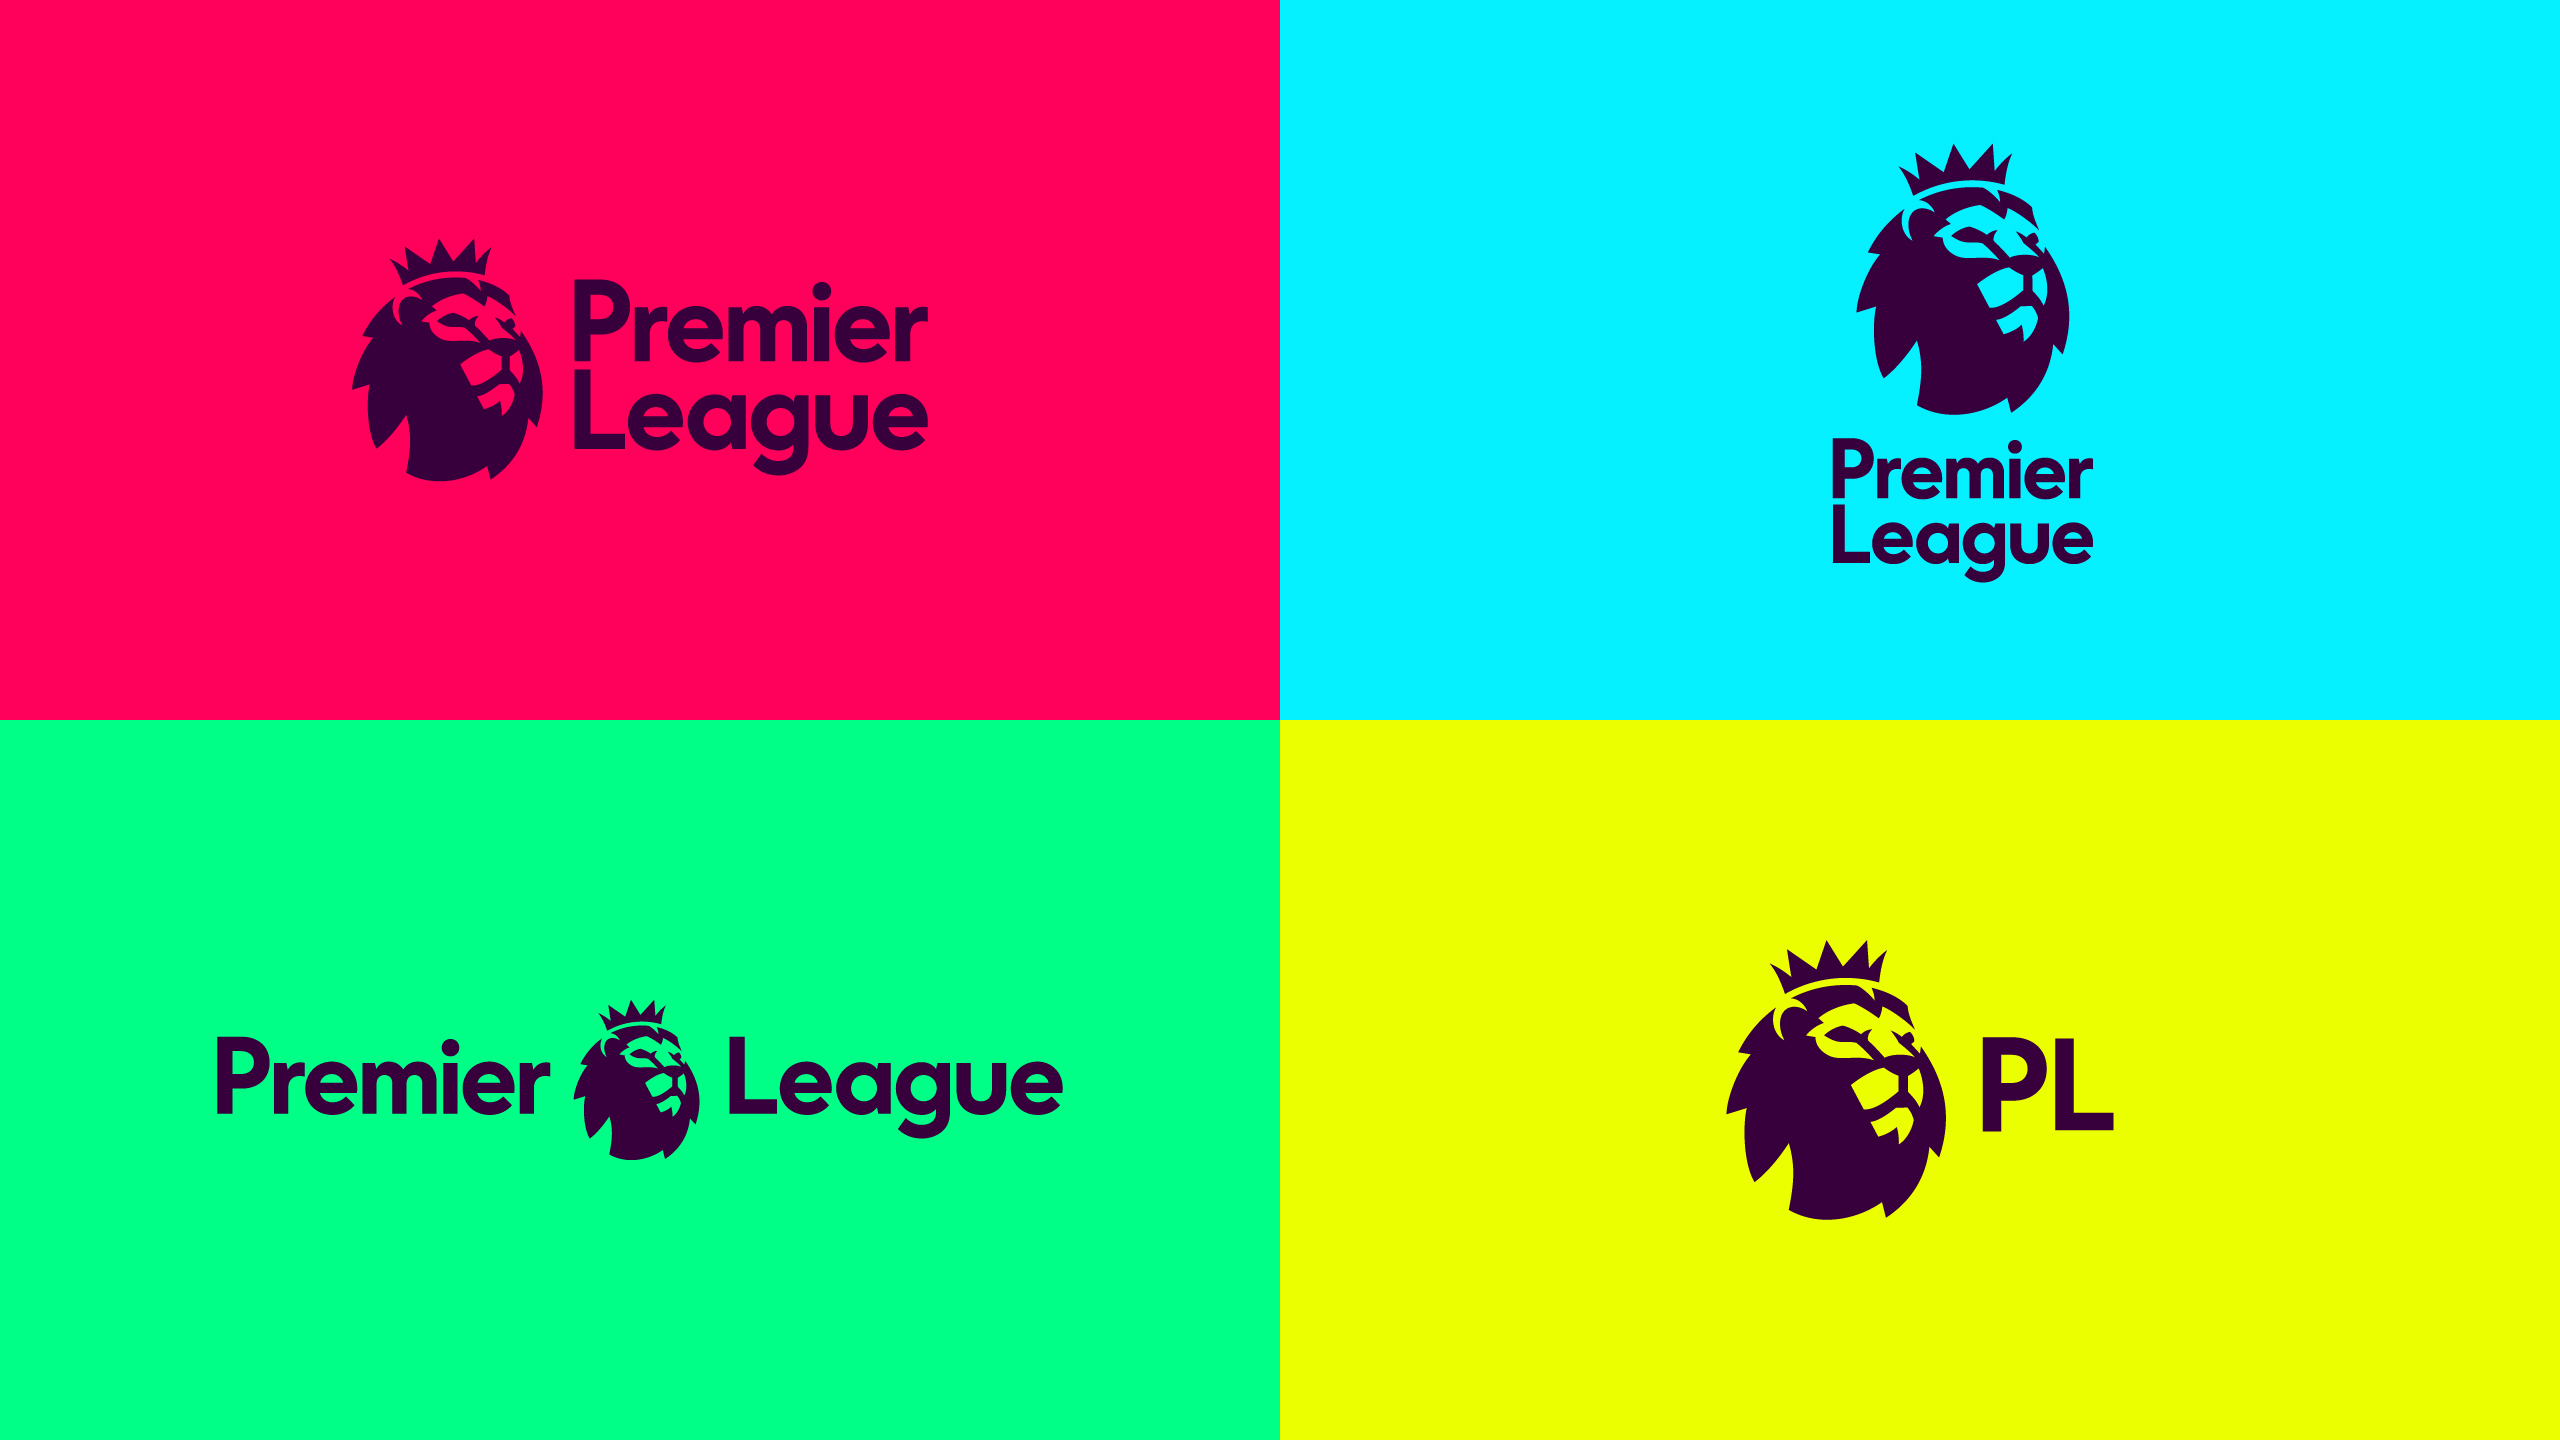 The Premier League's new logo feature's a lion's head, facing to the right as if looking forward